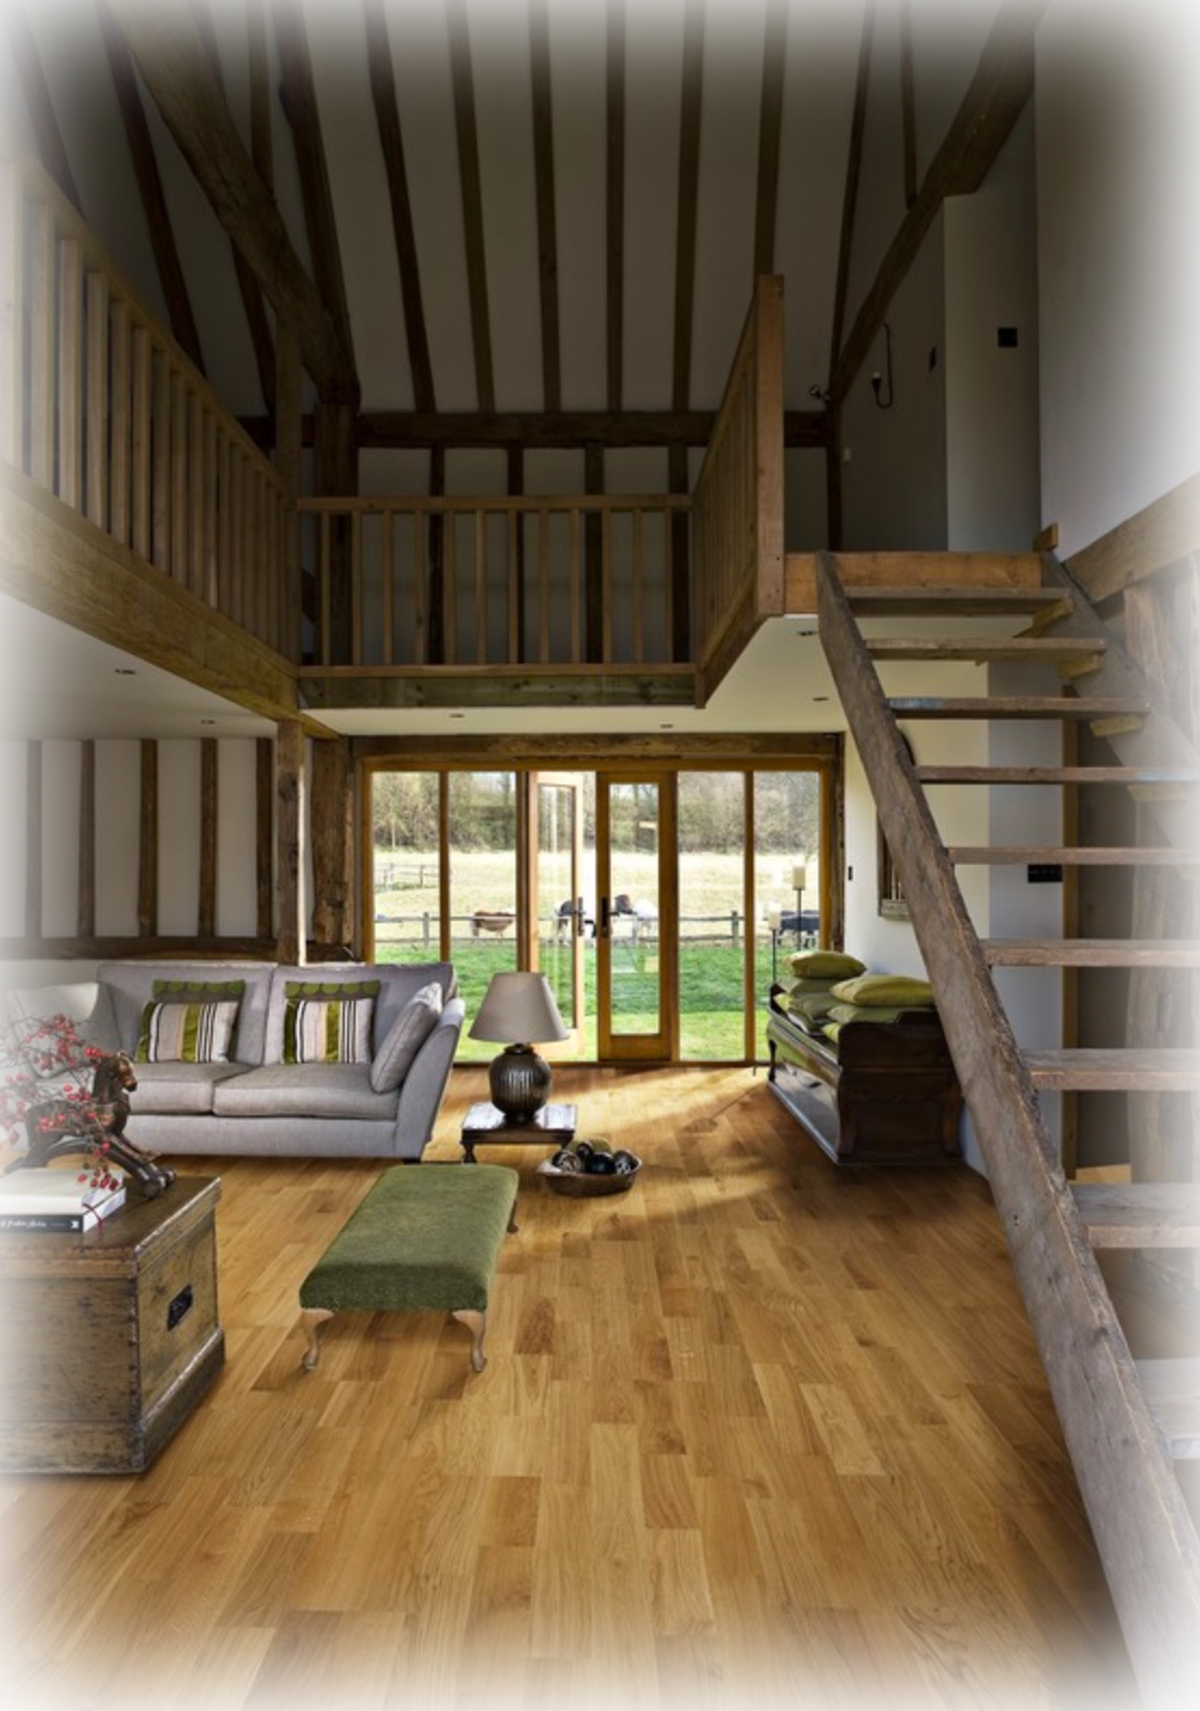 Red Oak Flooring Used In A Rustic Setting Emanates Warmth To The Entire Enviornment